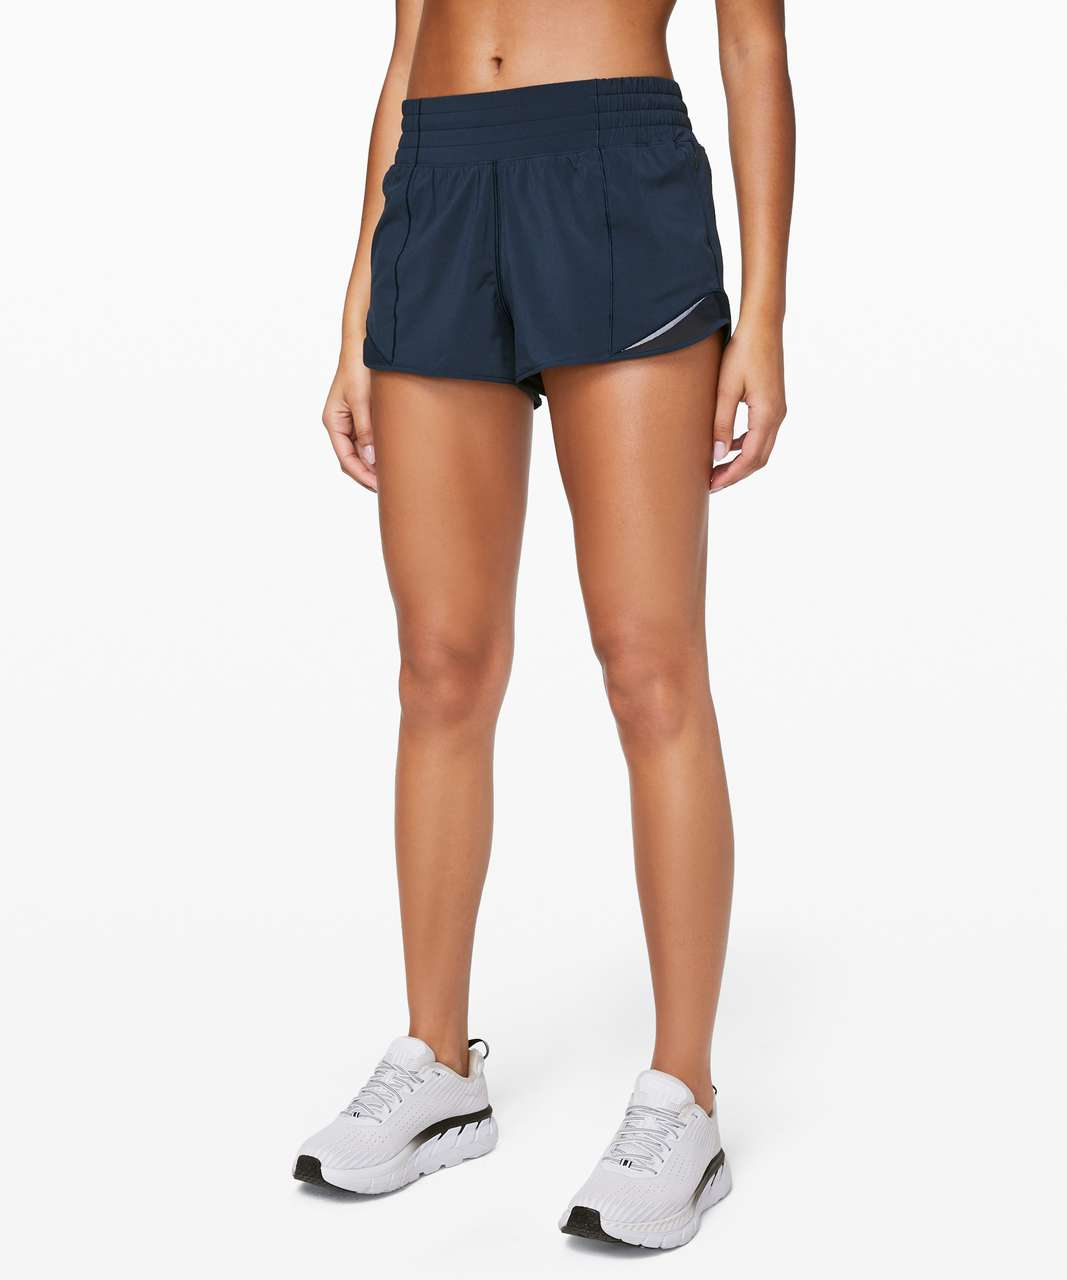 "Lululemon Hotty Hot Short II *2.5"" - True Navy"